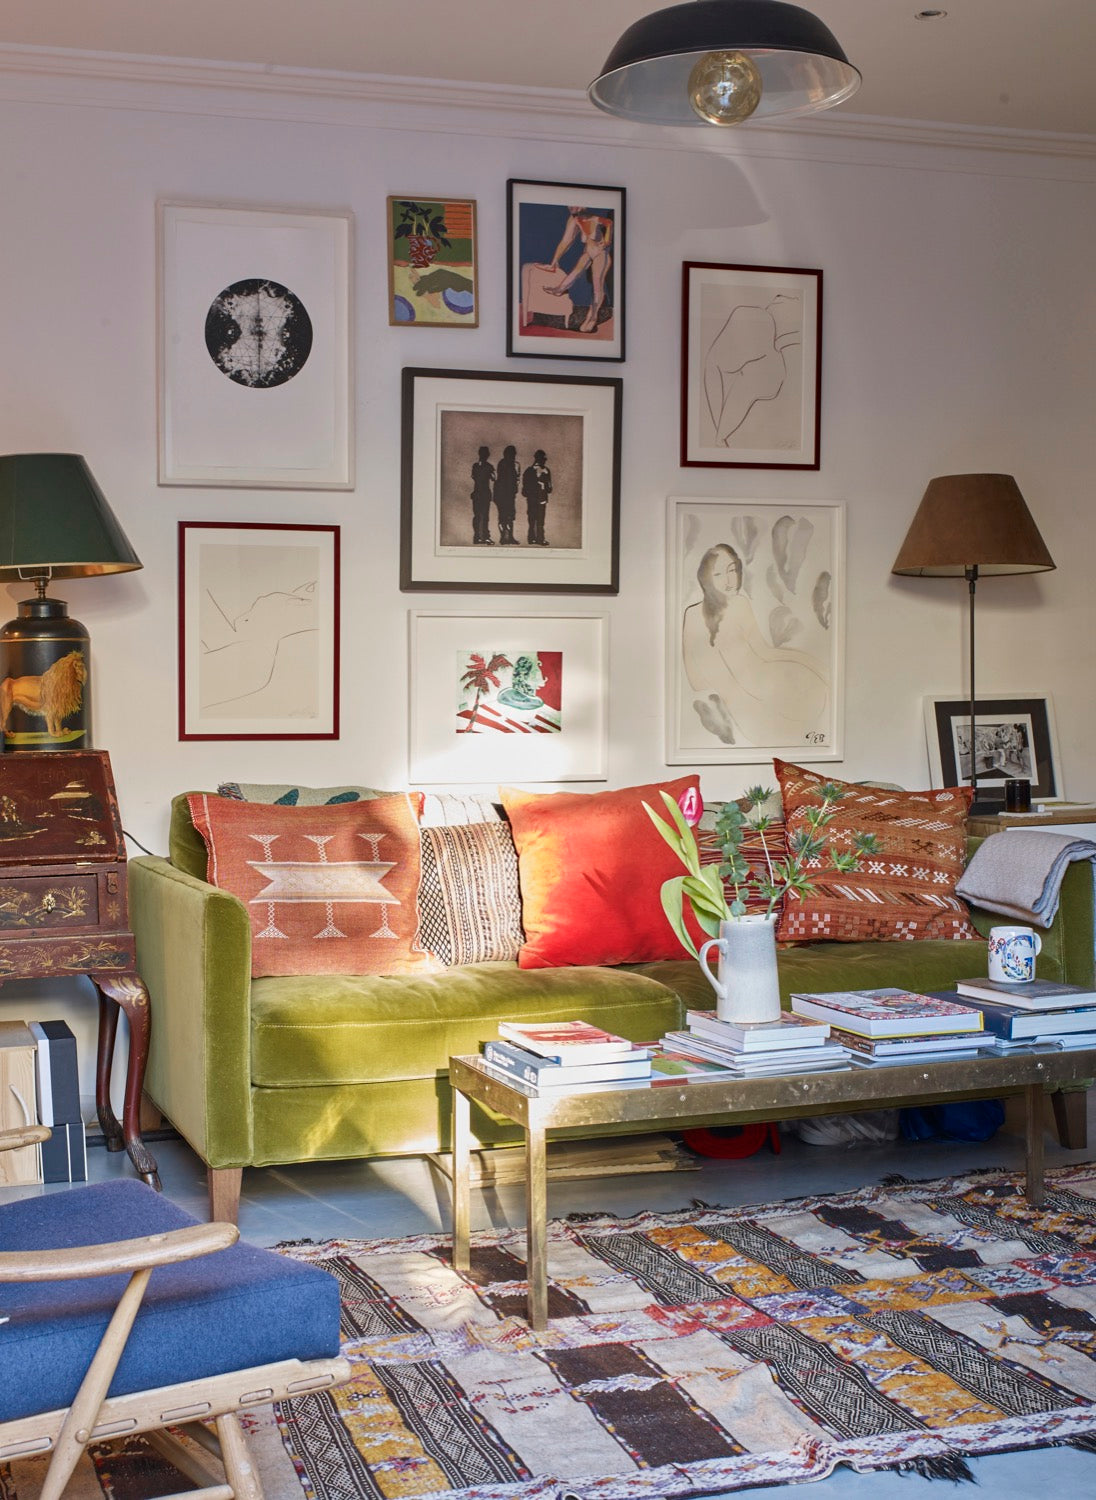 Displaying Art in Your Home | Partnership Editions